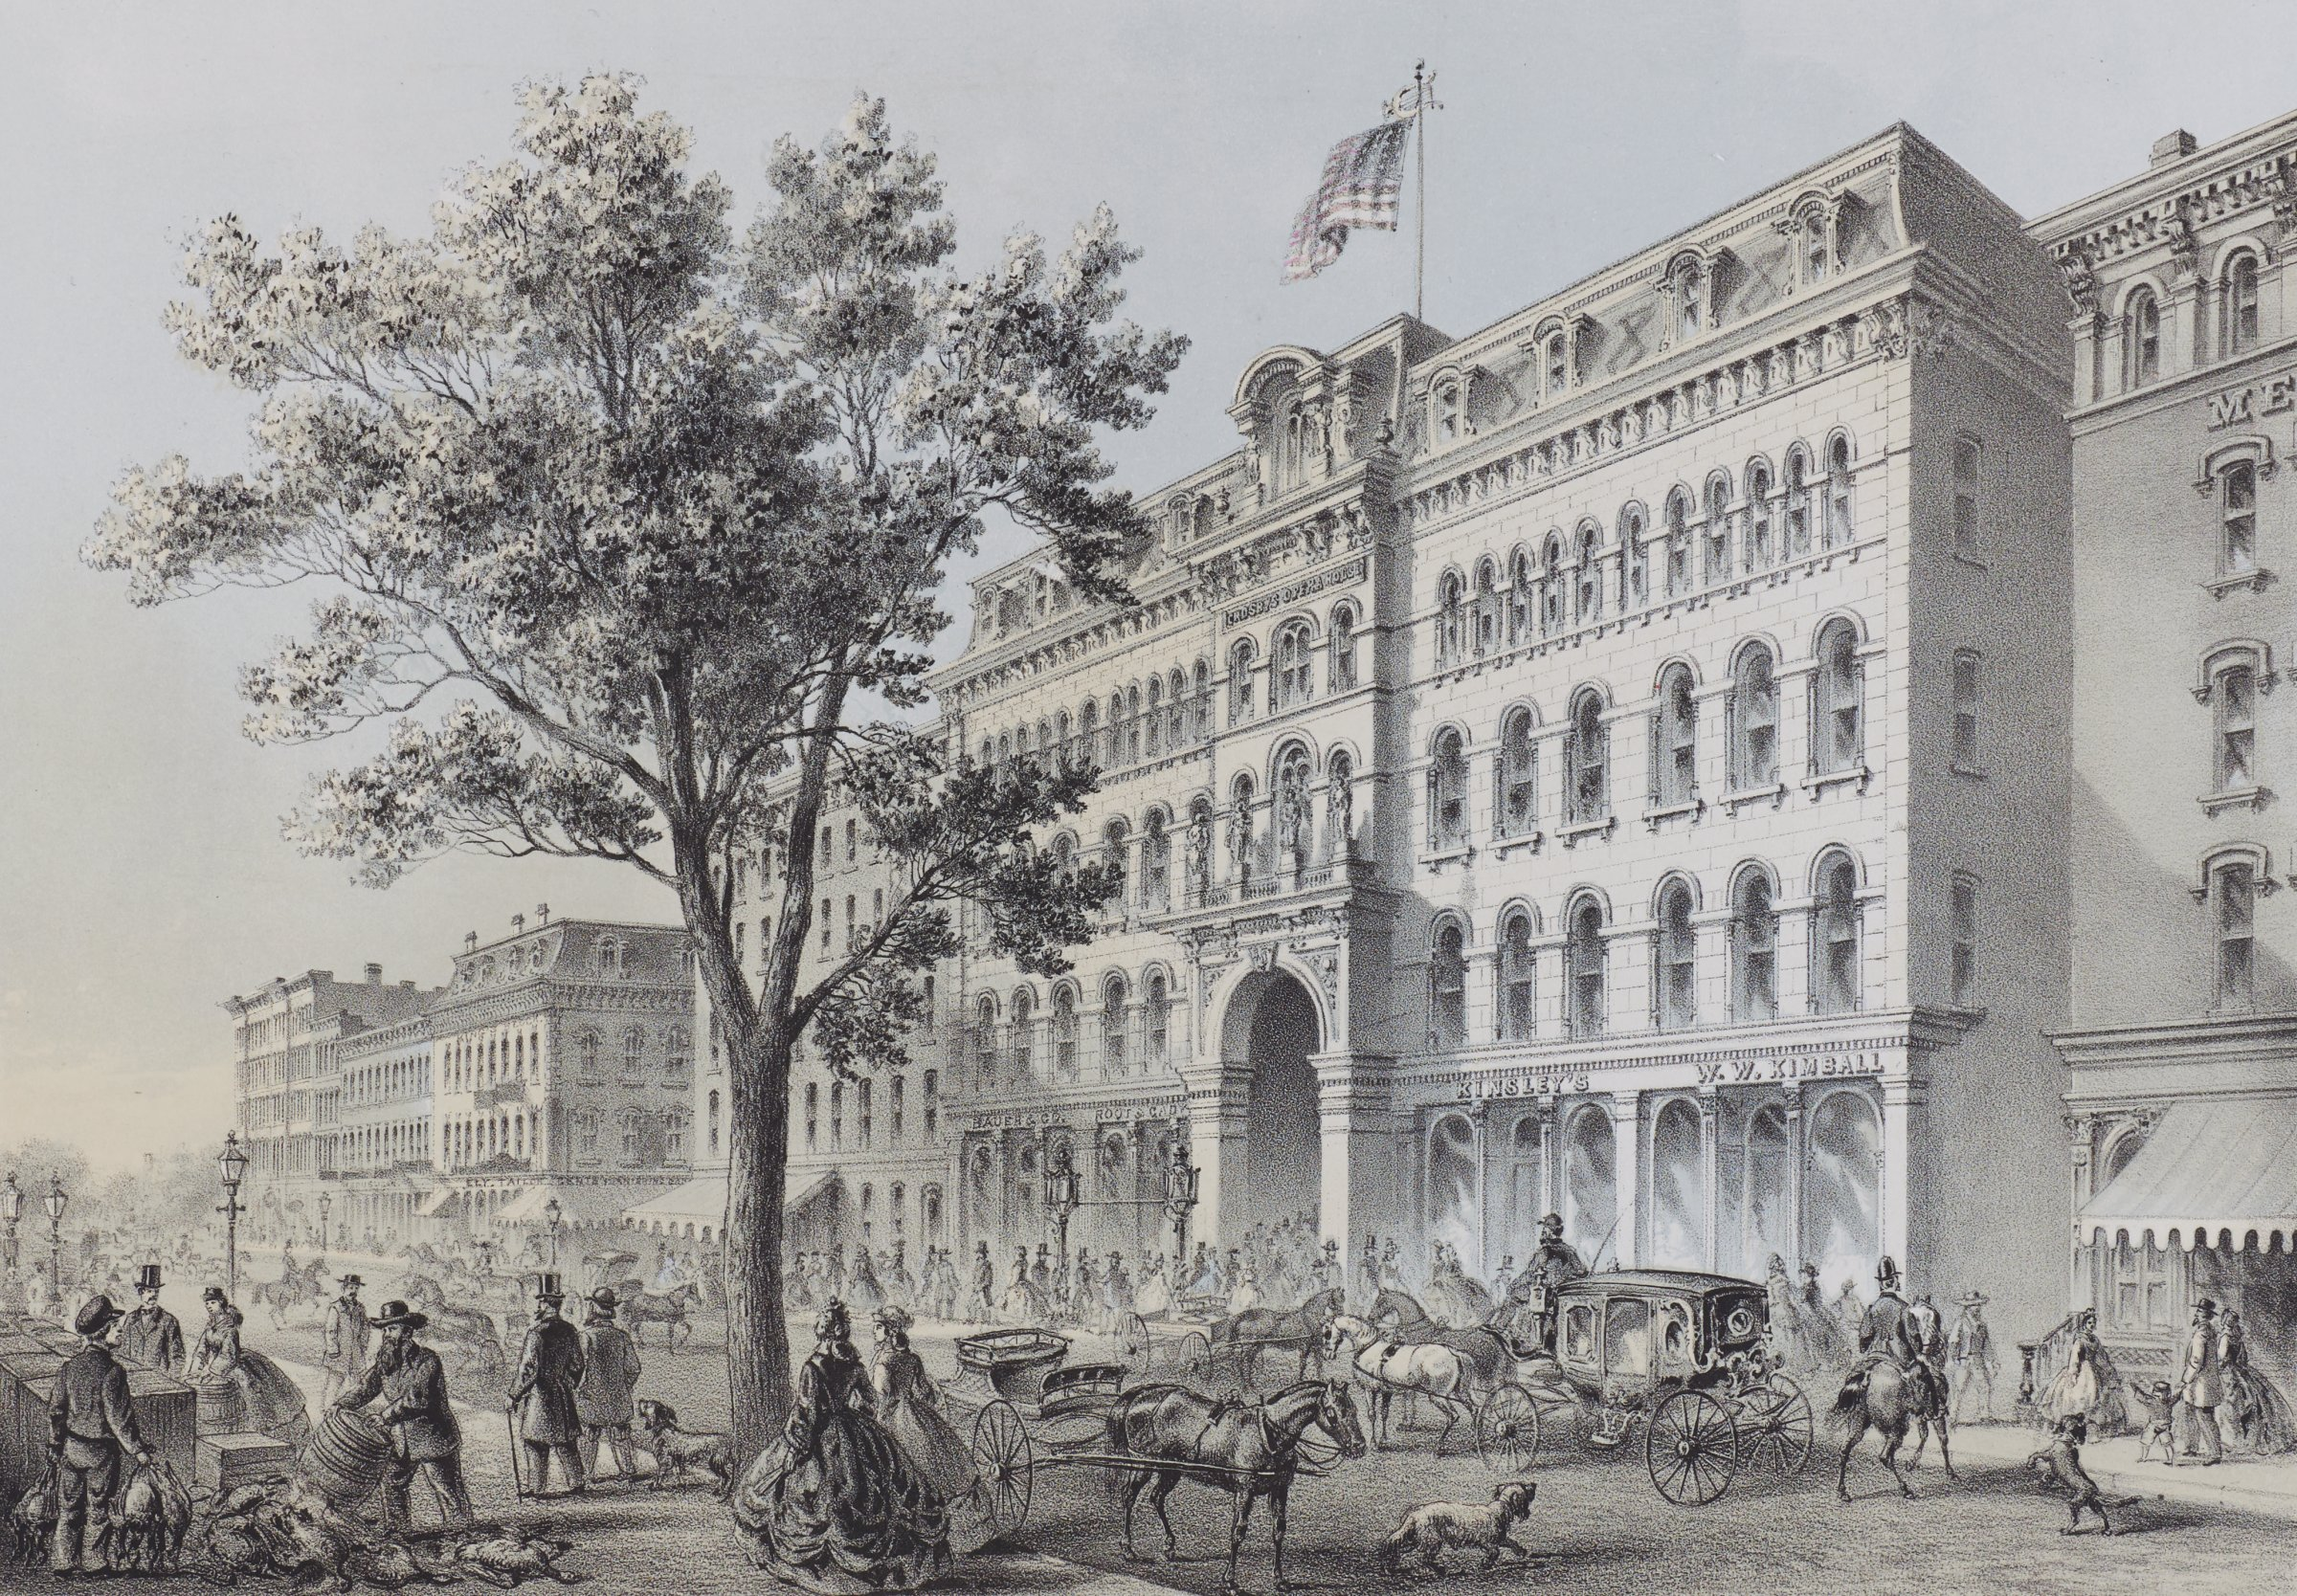 View of Crosby's Opera House, a five-story Italianate palace with a mansard roof, located on the north side of Washington Street between State and Dearborn in the city of Chicago. Here it is seen from a point on State Street, looking northwest. The street in front of the opera house—filled with people, horse-drawn carriages, and dogs—bustles with activity. A large tree, perhaps an oak, dominates the foreground at left of center.